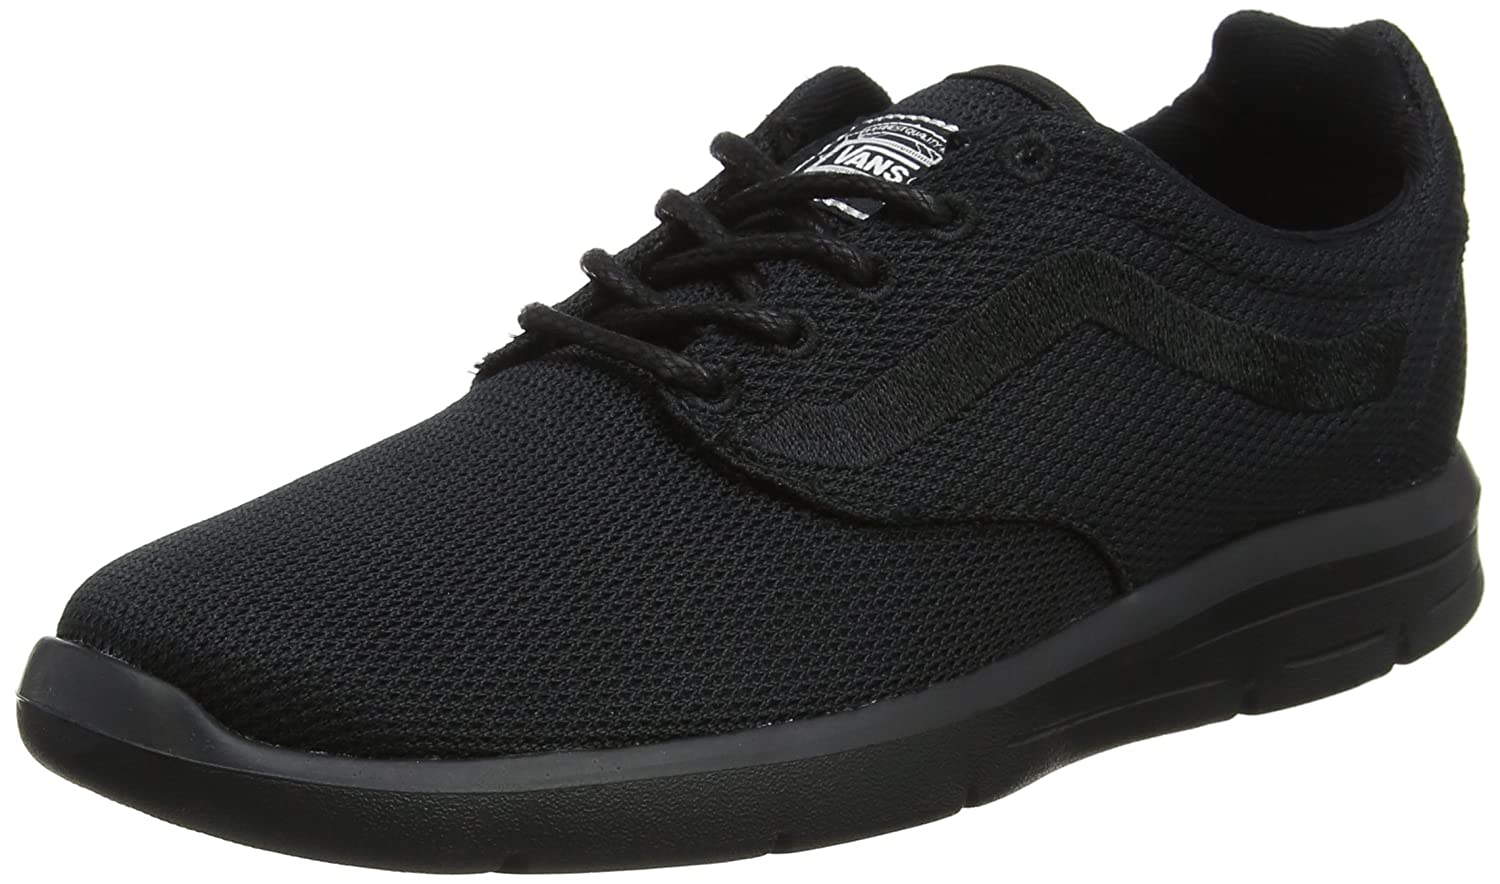 Vans Men's Reflective ISO 1.5 Sneakers B01M0PRMUE 11.5 B(M) US Women / 10 D(M) US|Mono Black